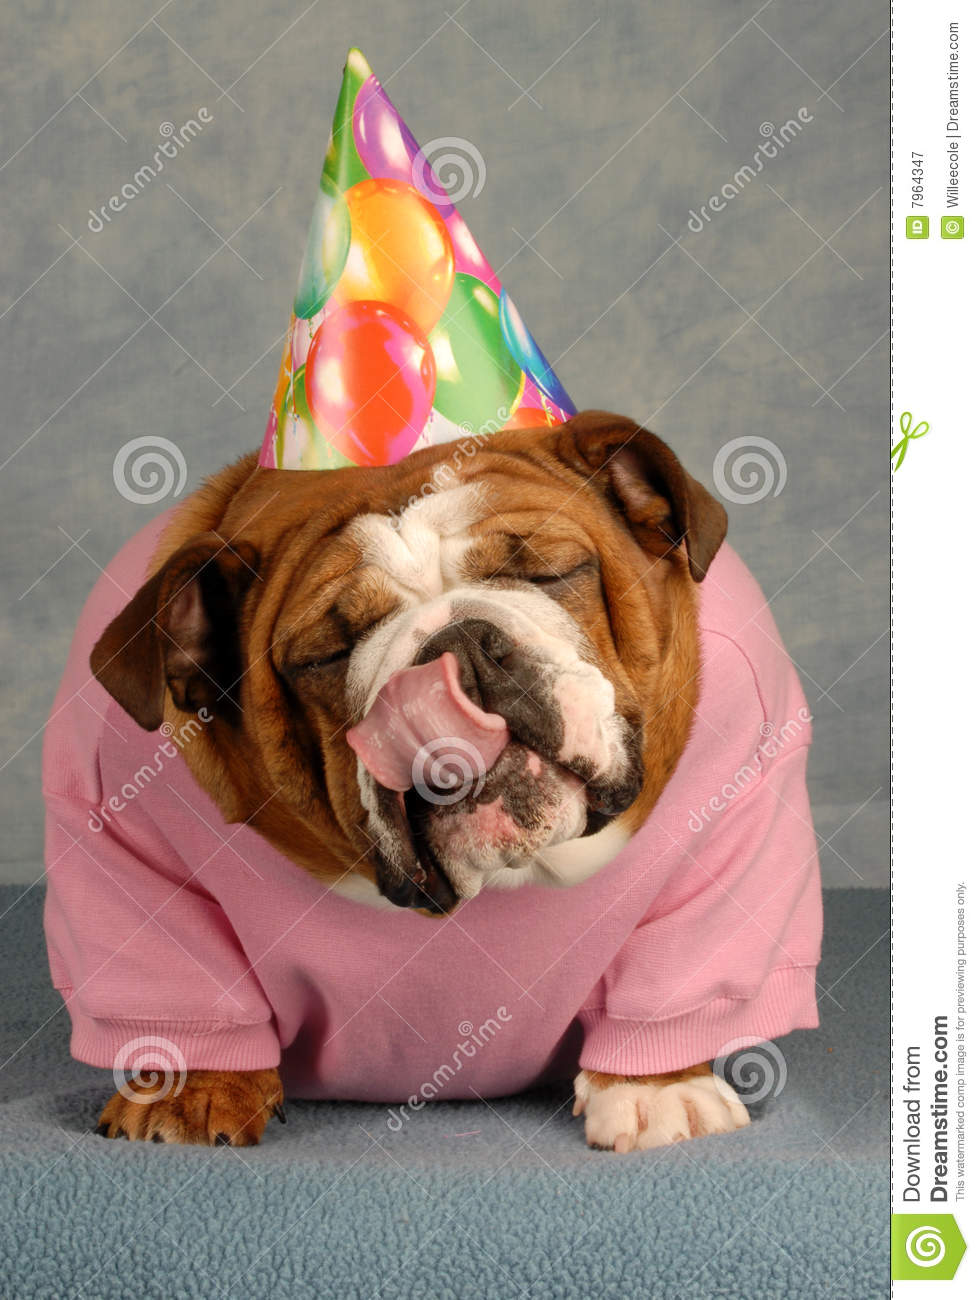 English Bulldog With Pink Shirt And Birthday Hat Tongue Sticking Out